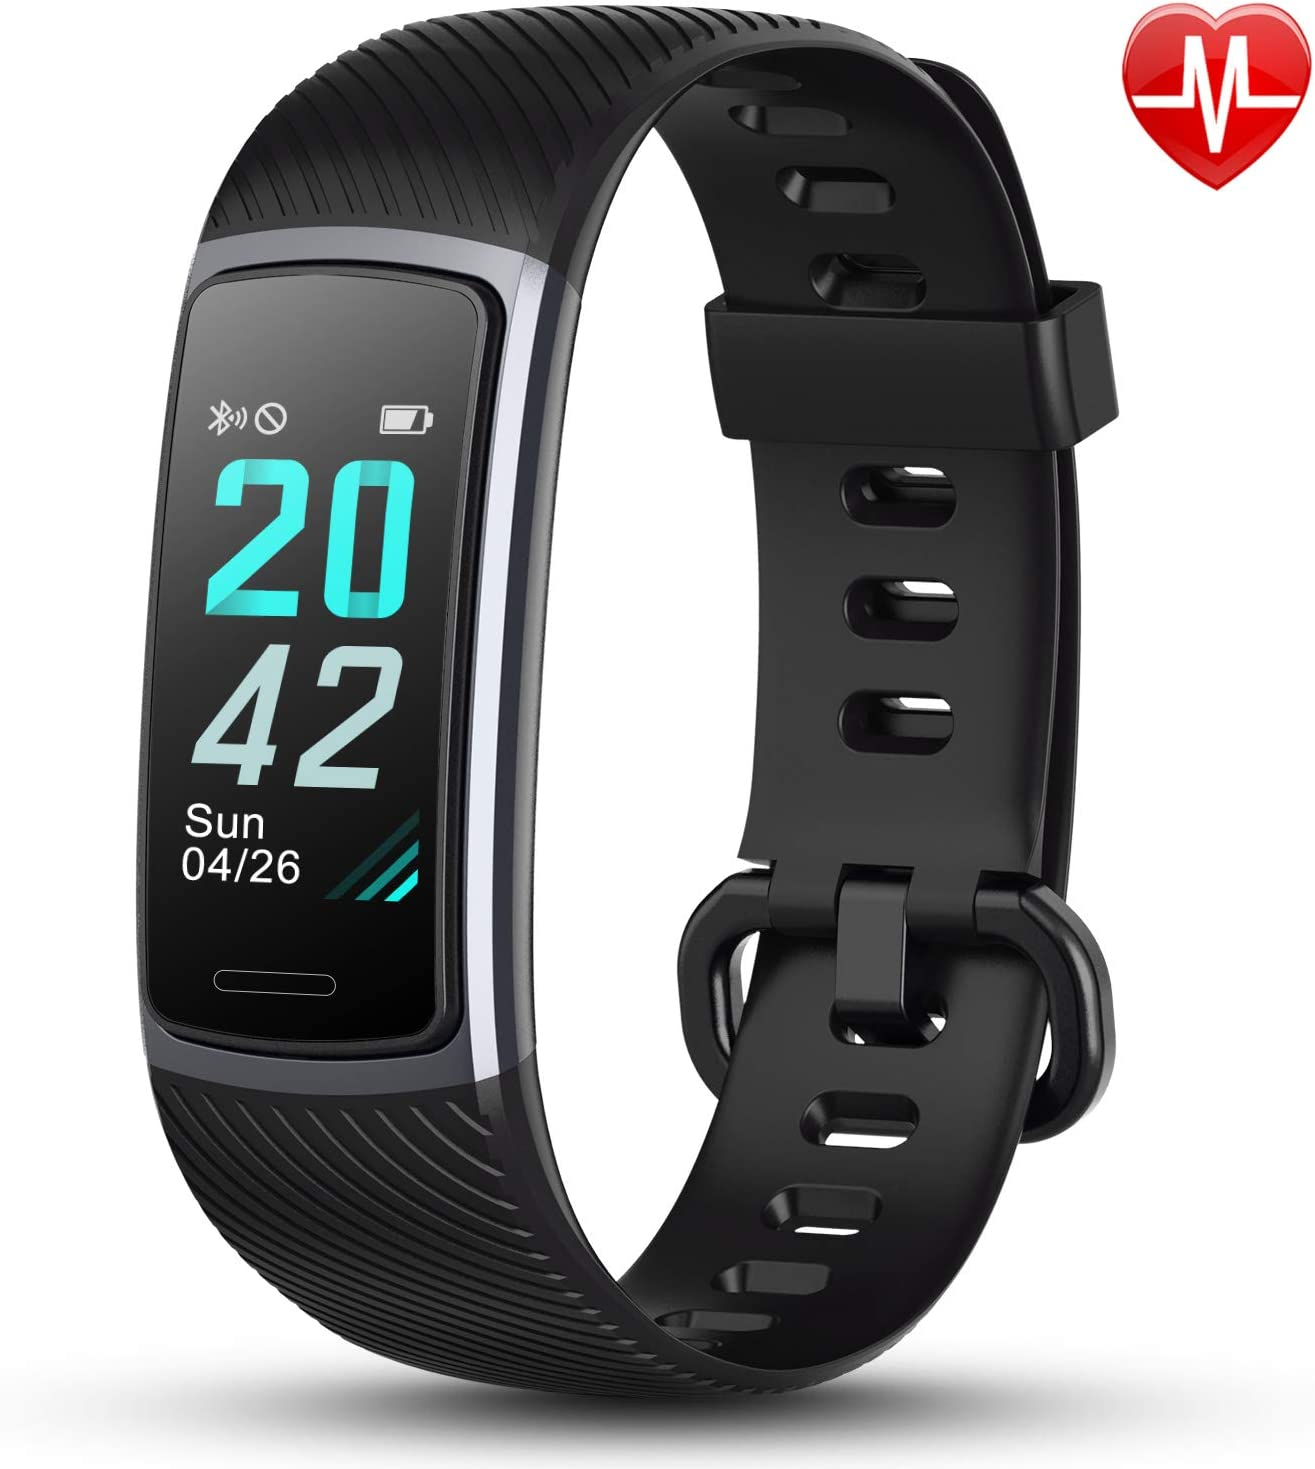 LETSCOM Fitness Tracker HR, Activity Tracker Watch with Heart Rate Monitor, Step and Calorie Counter, Screen IP68 Waterproof Pedometer Watch for Kids Women and Men